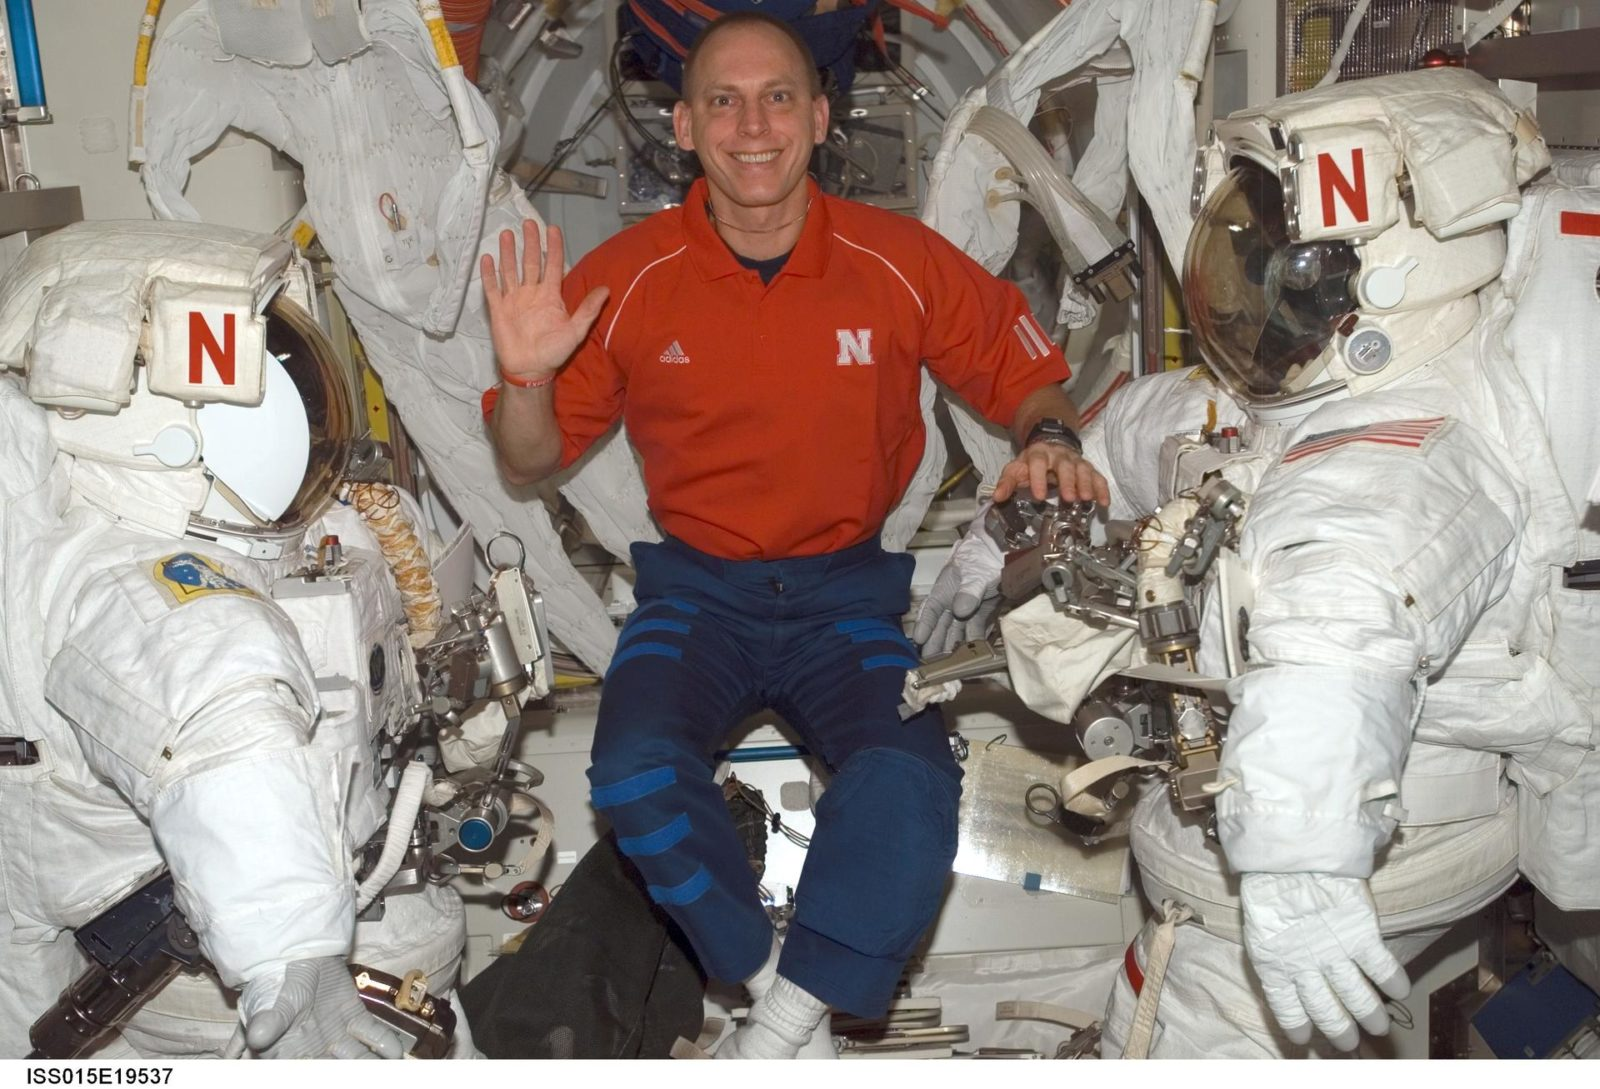 View of Anderson posing for photo in the A/L during Expedition 15